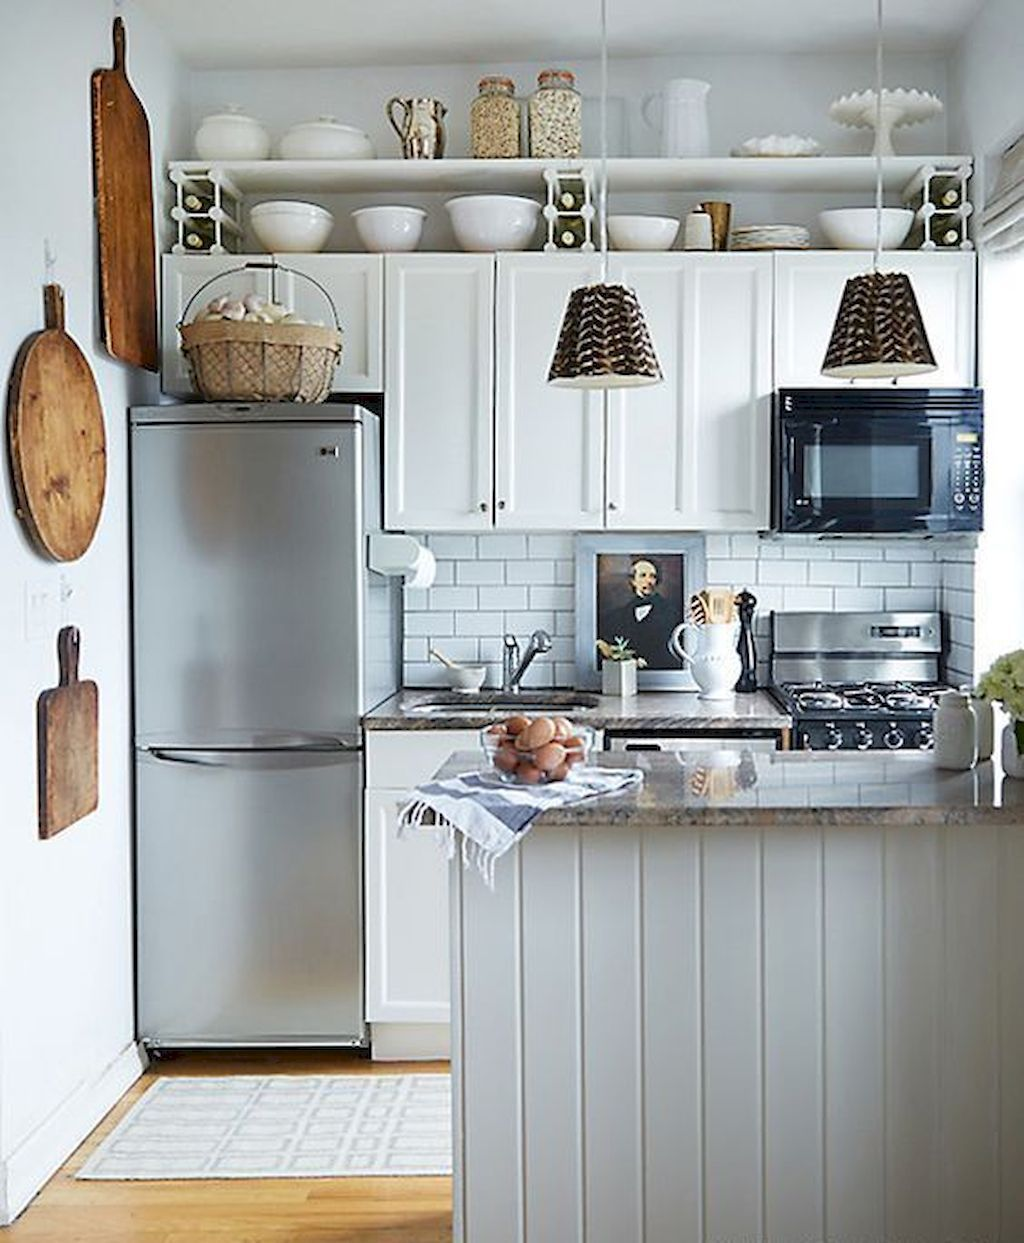 Pin by Home Minify on Kitchen Designs & Decor | Pinterest | Kitchens ...